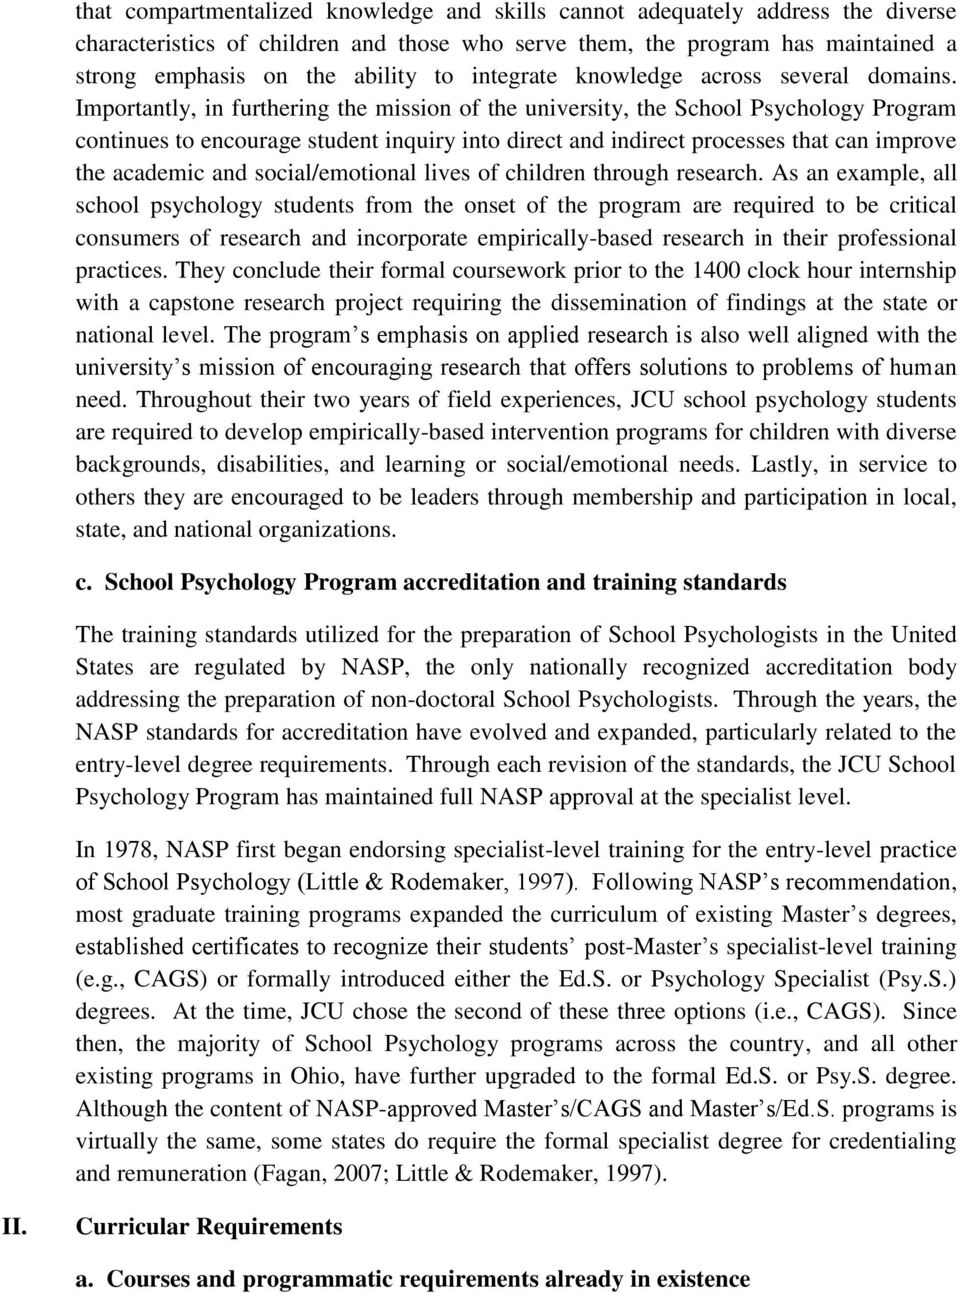 Importantly, in furthering the mission of the university, the School Psychology Program continues to encourage student inquiry into direct and indirect processes that can improve the academic and